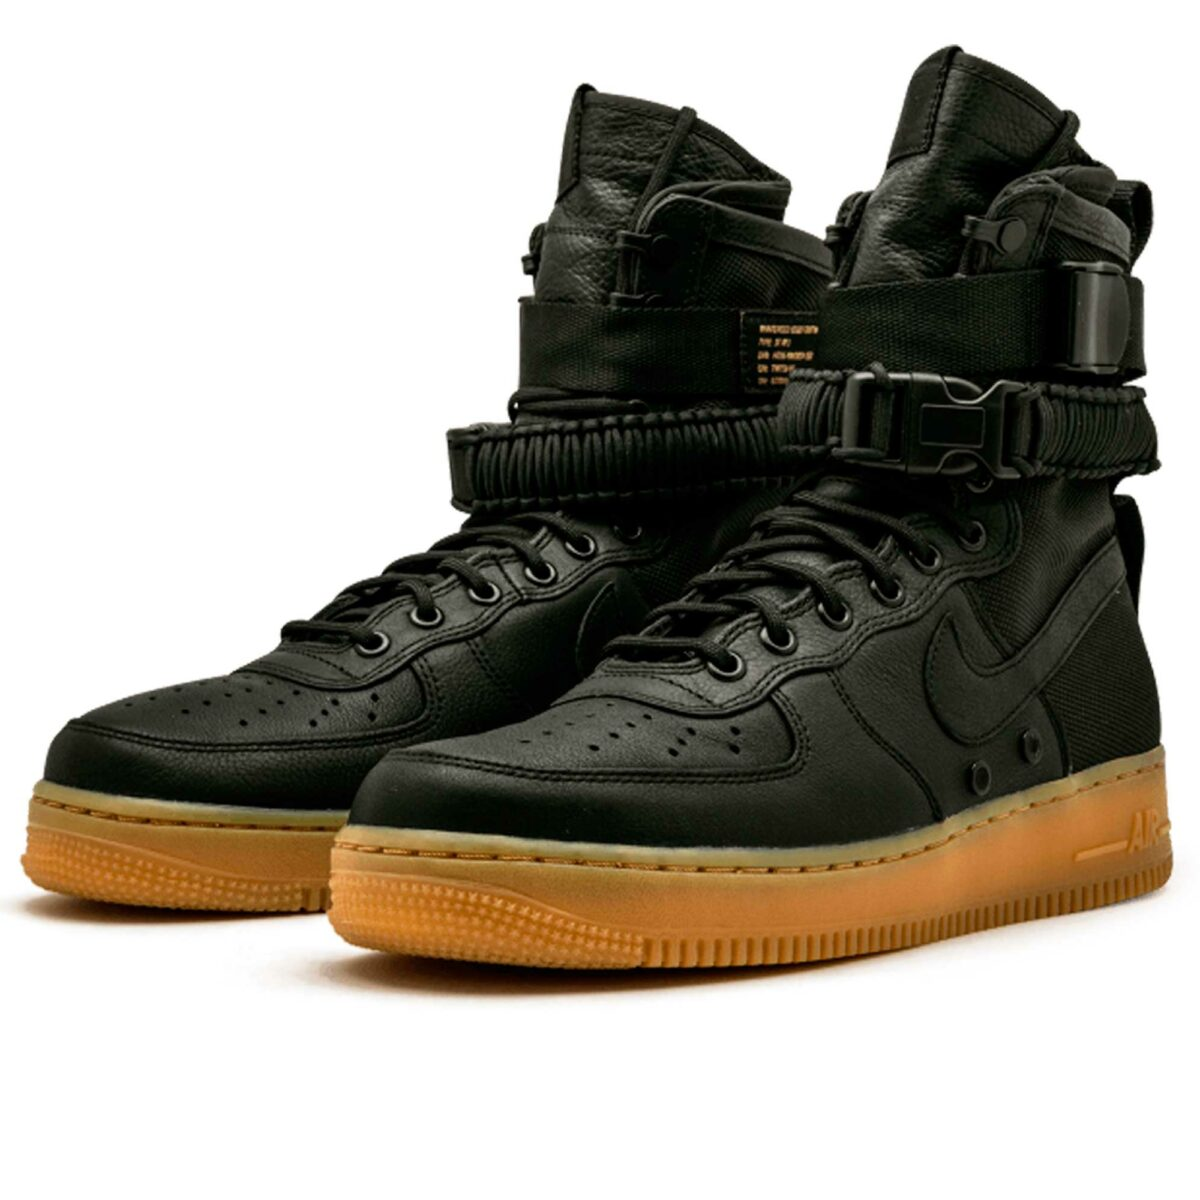 nike sf air force 1 black gum 859202-009 купить